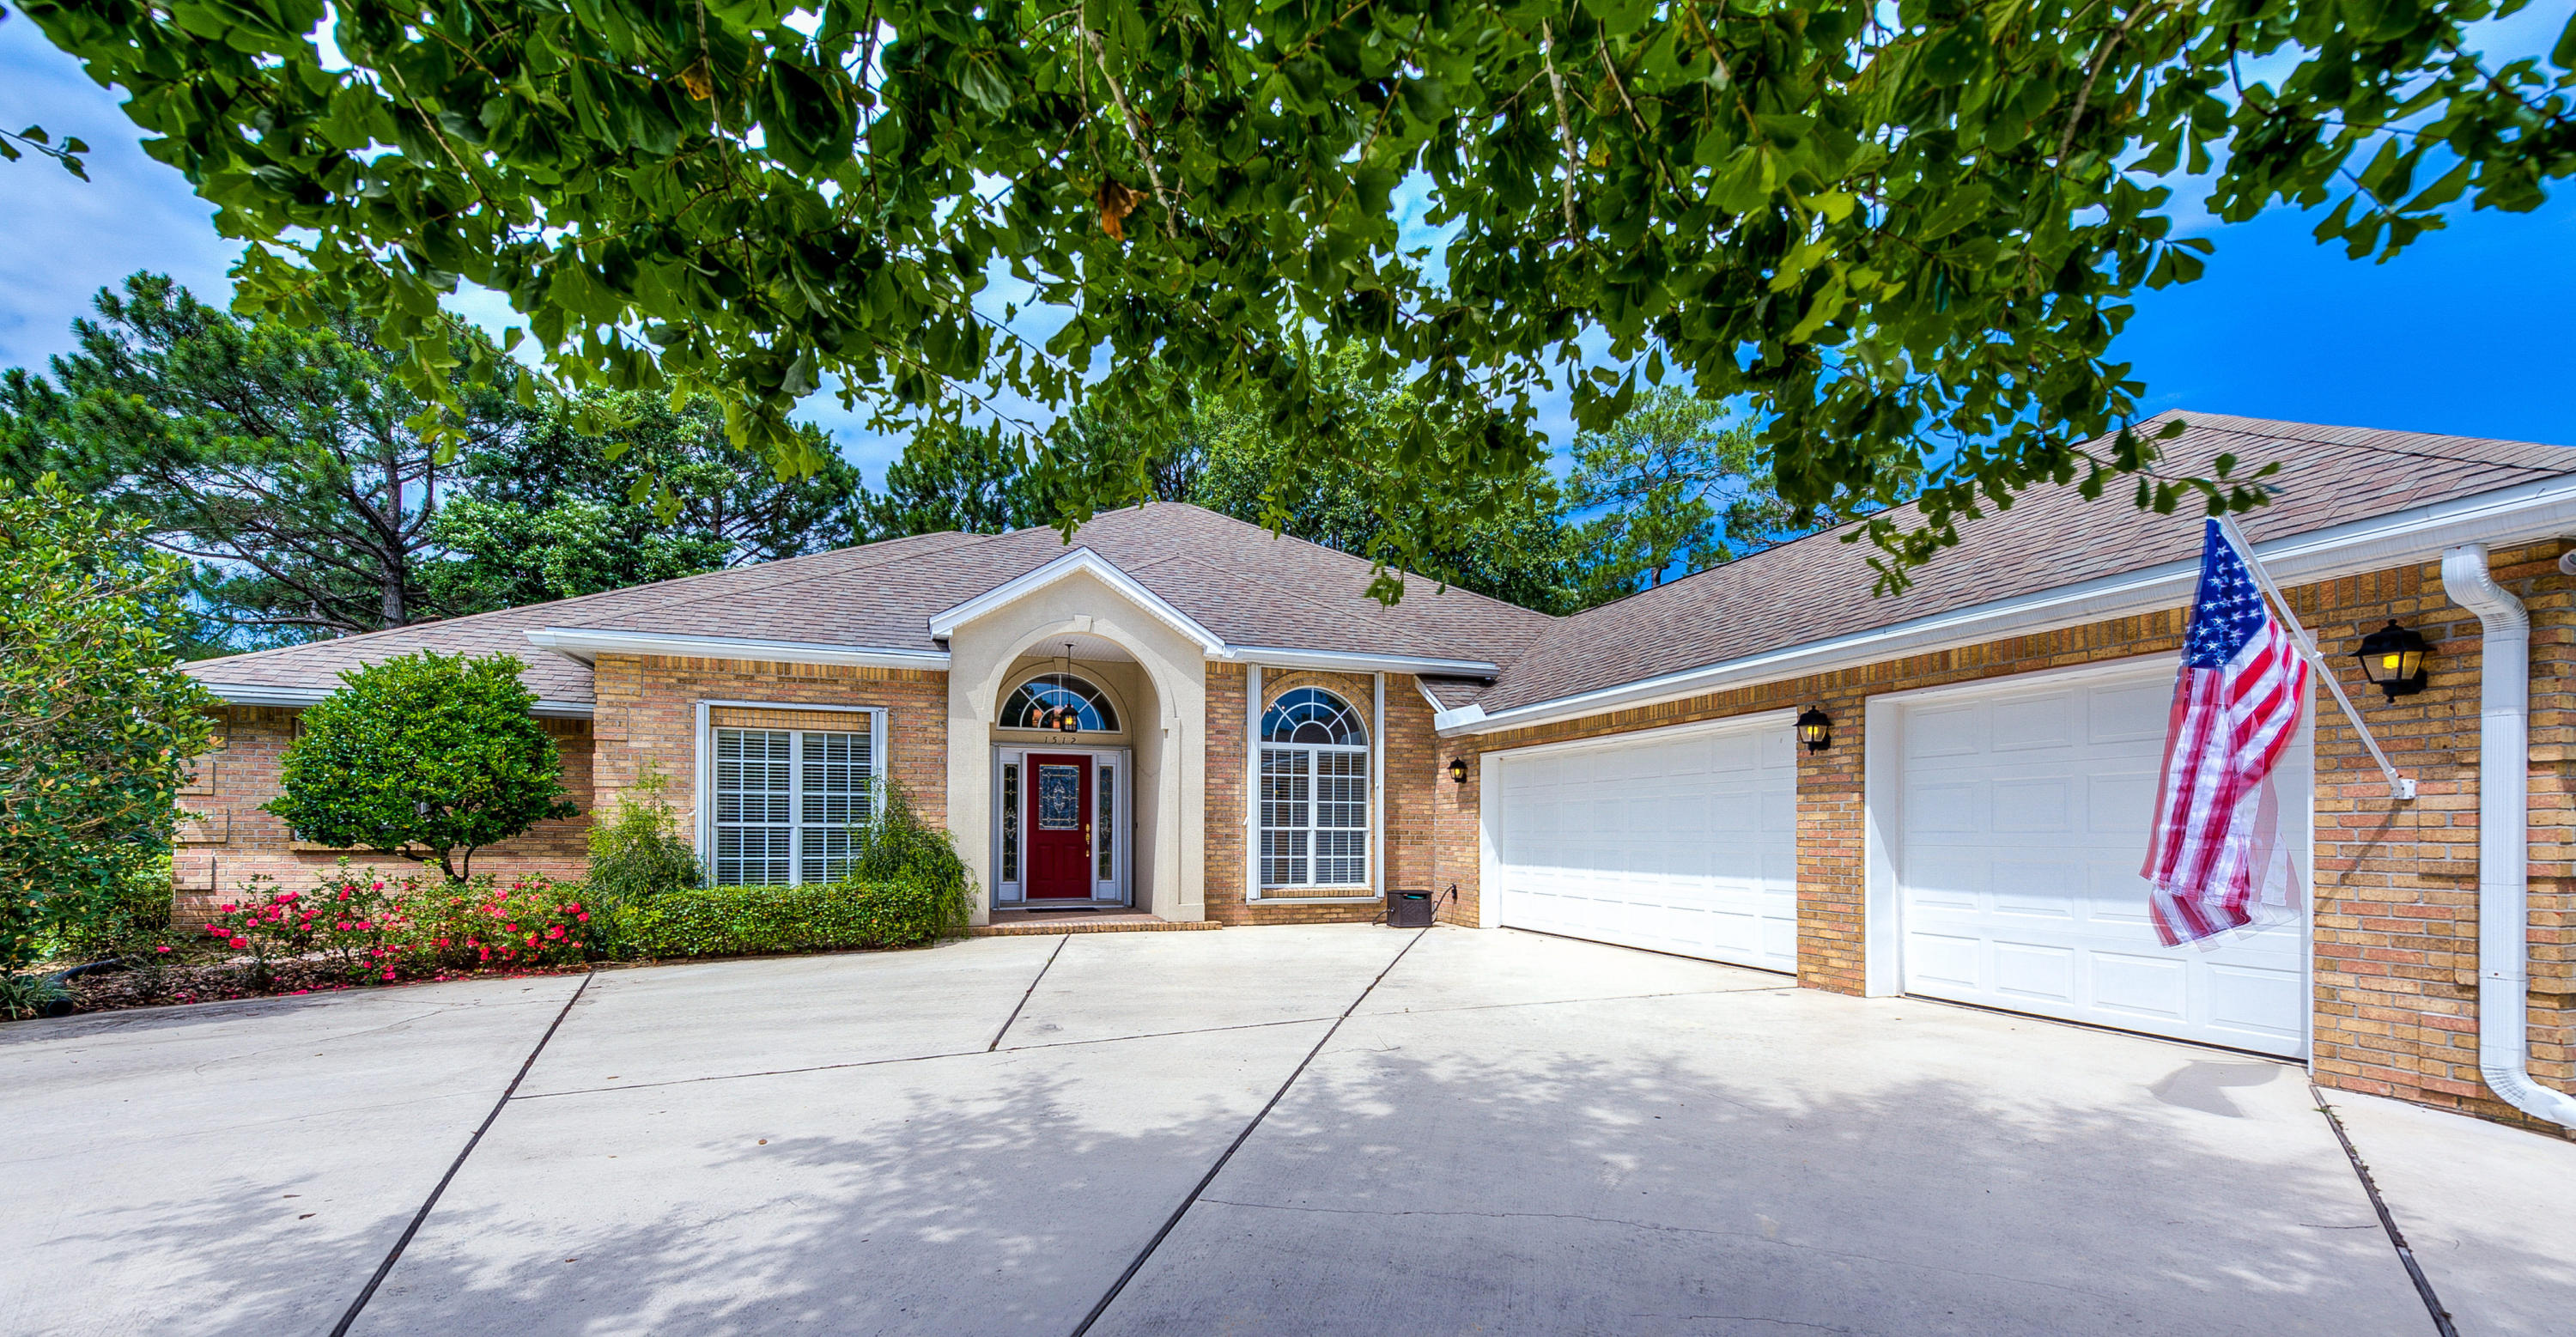 A 4 Bedroom 3 Bedroom Bluewater Sub (222208.00) Home